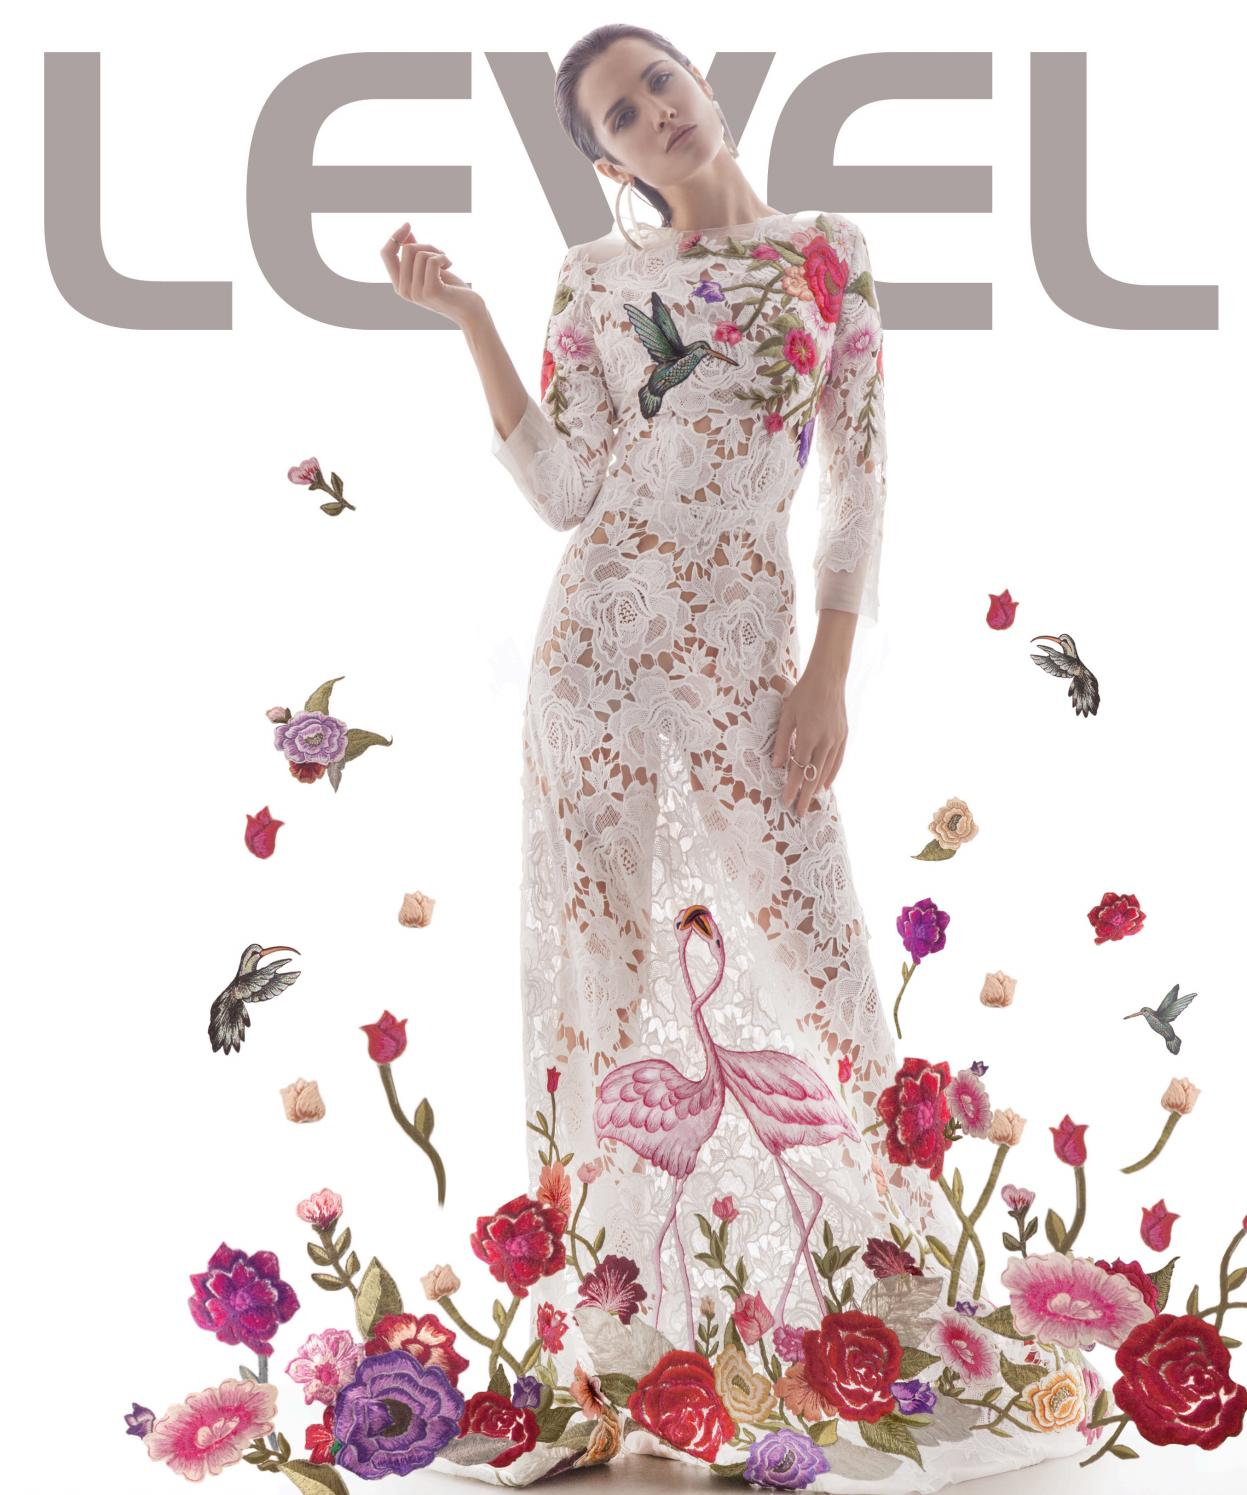 658dc9217c8b Edicion #50 Level Lujo 2016 by Revista Level - issuu